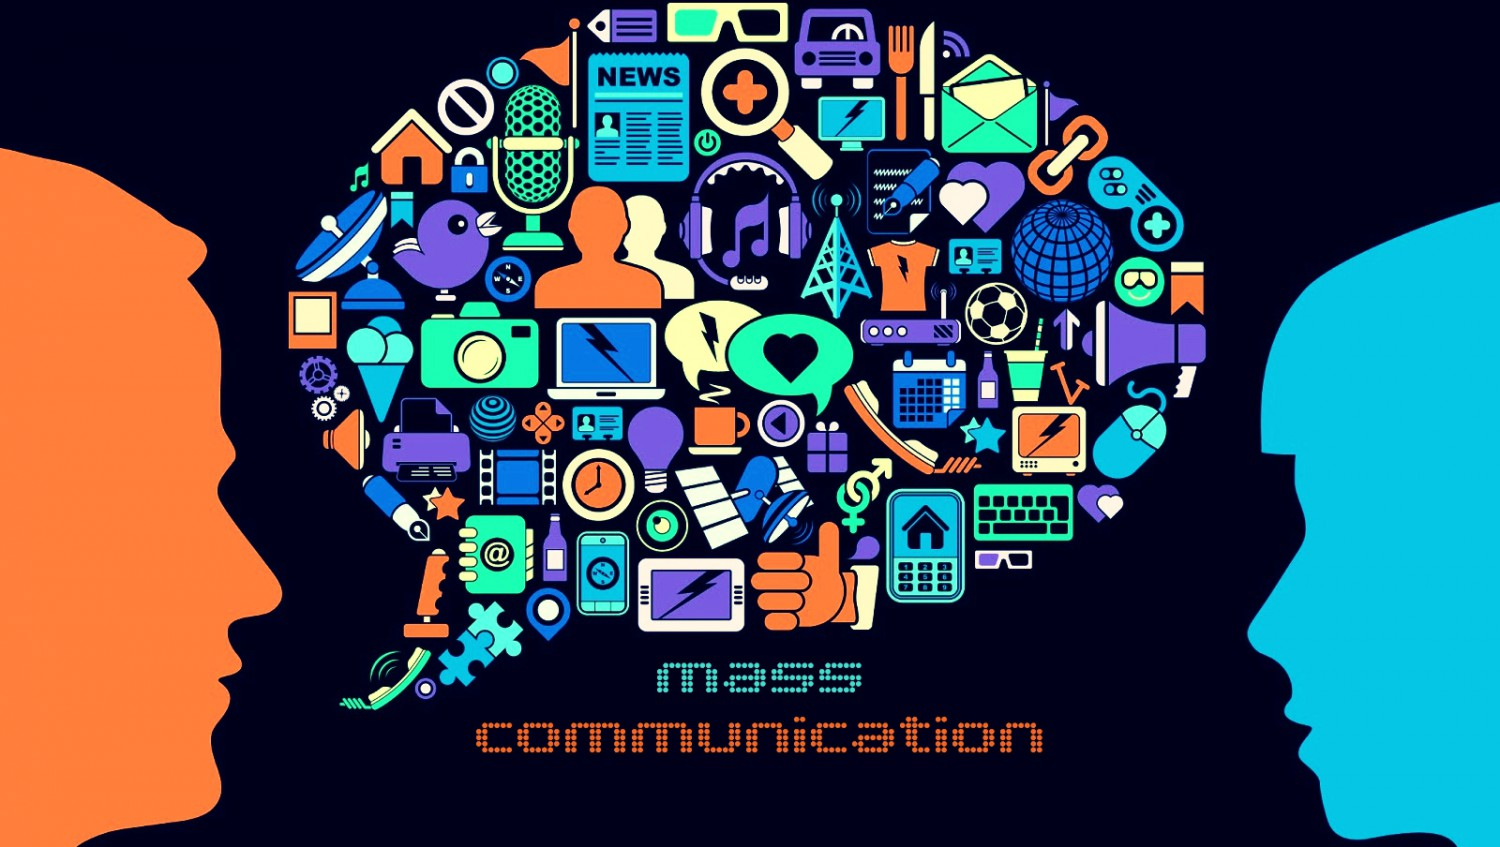 cropped-mass-communications-banner.jpg